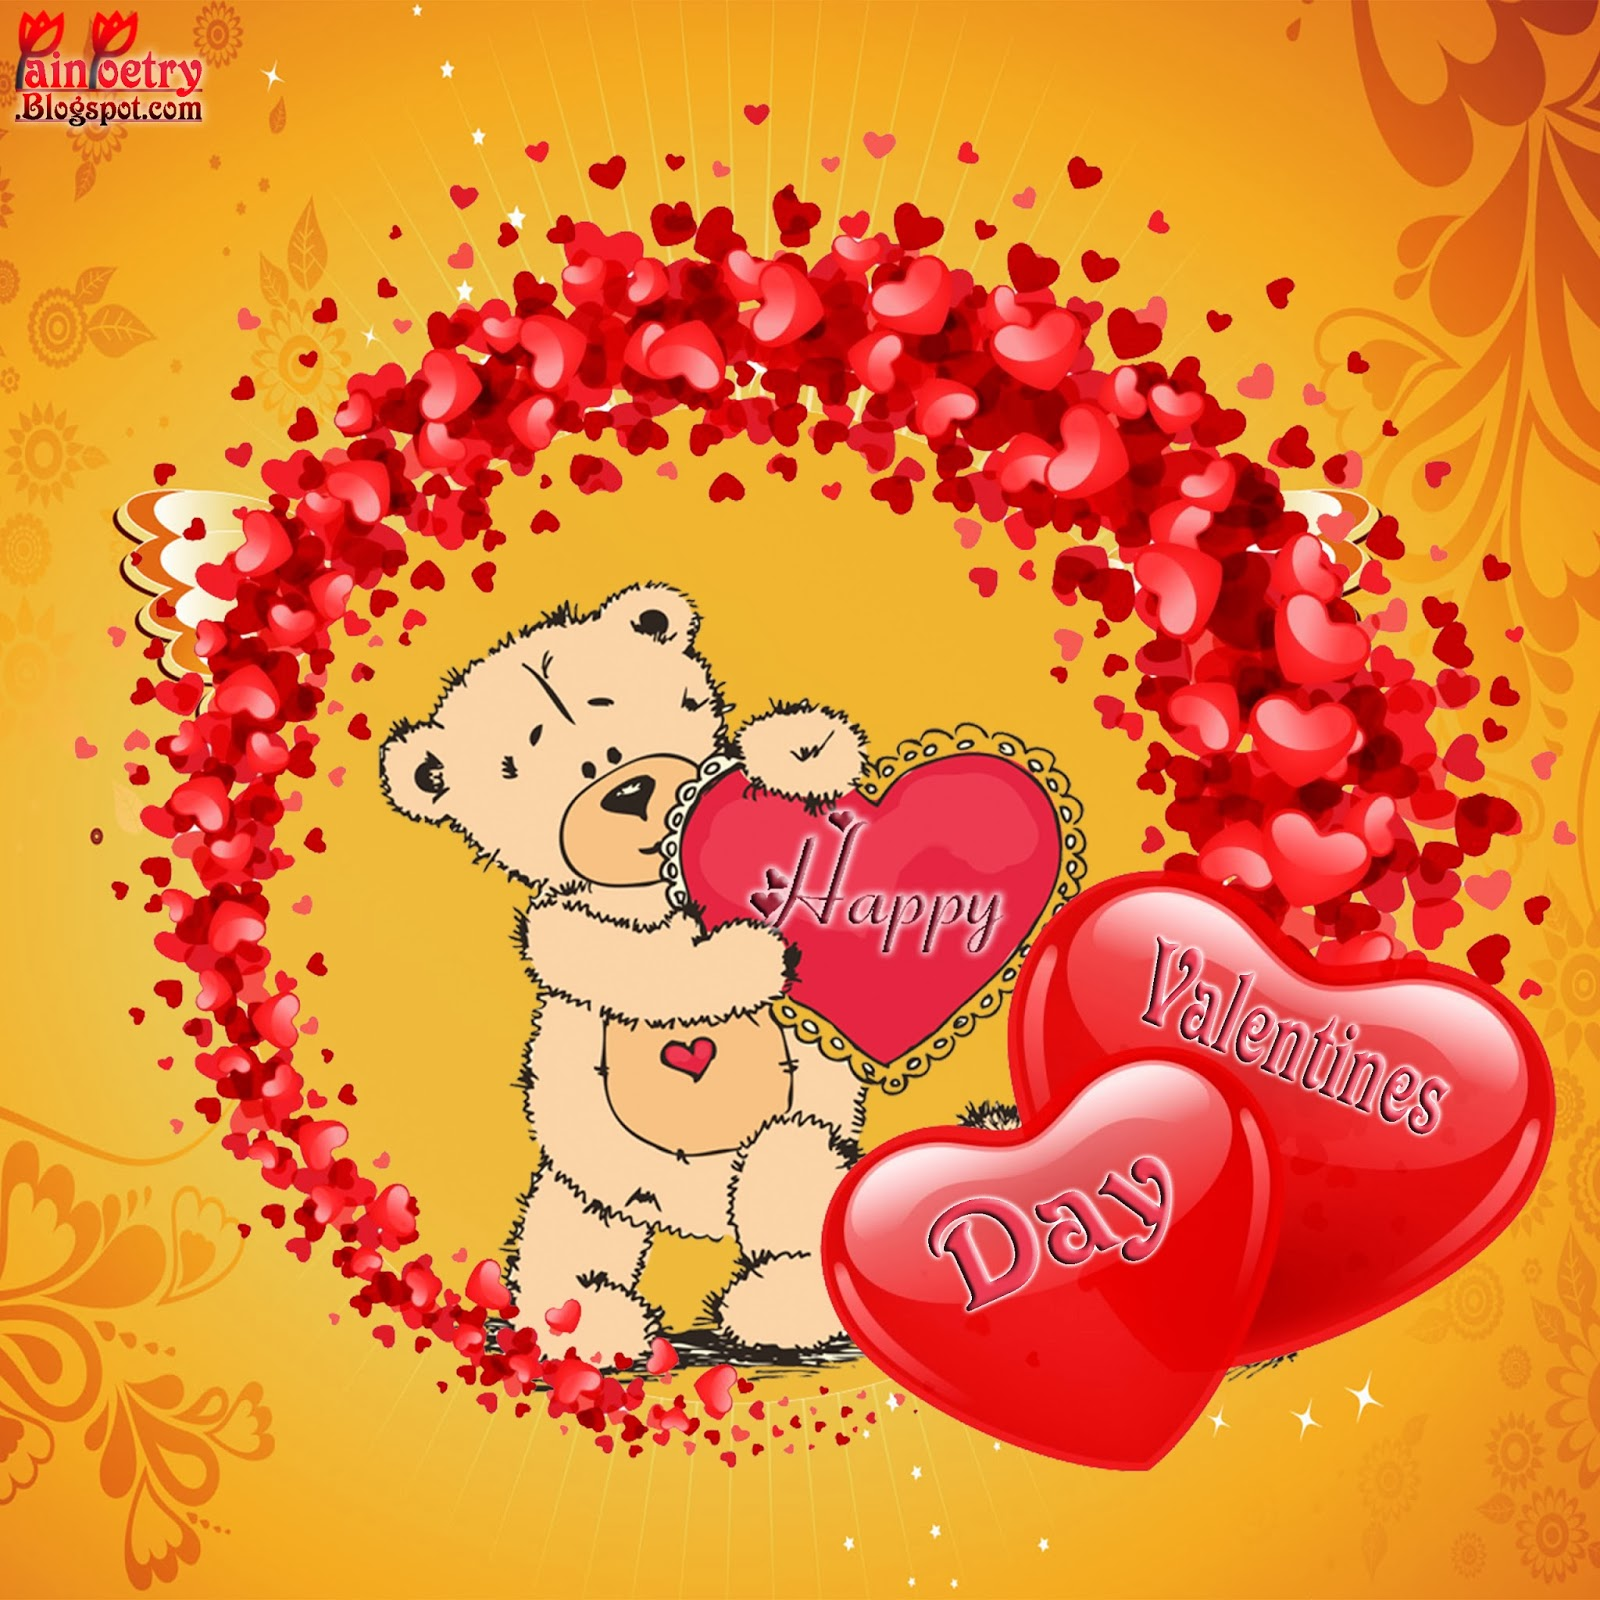 Happy-Walentines-Day-With-3-Hearts-Image-Wide